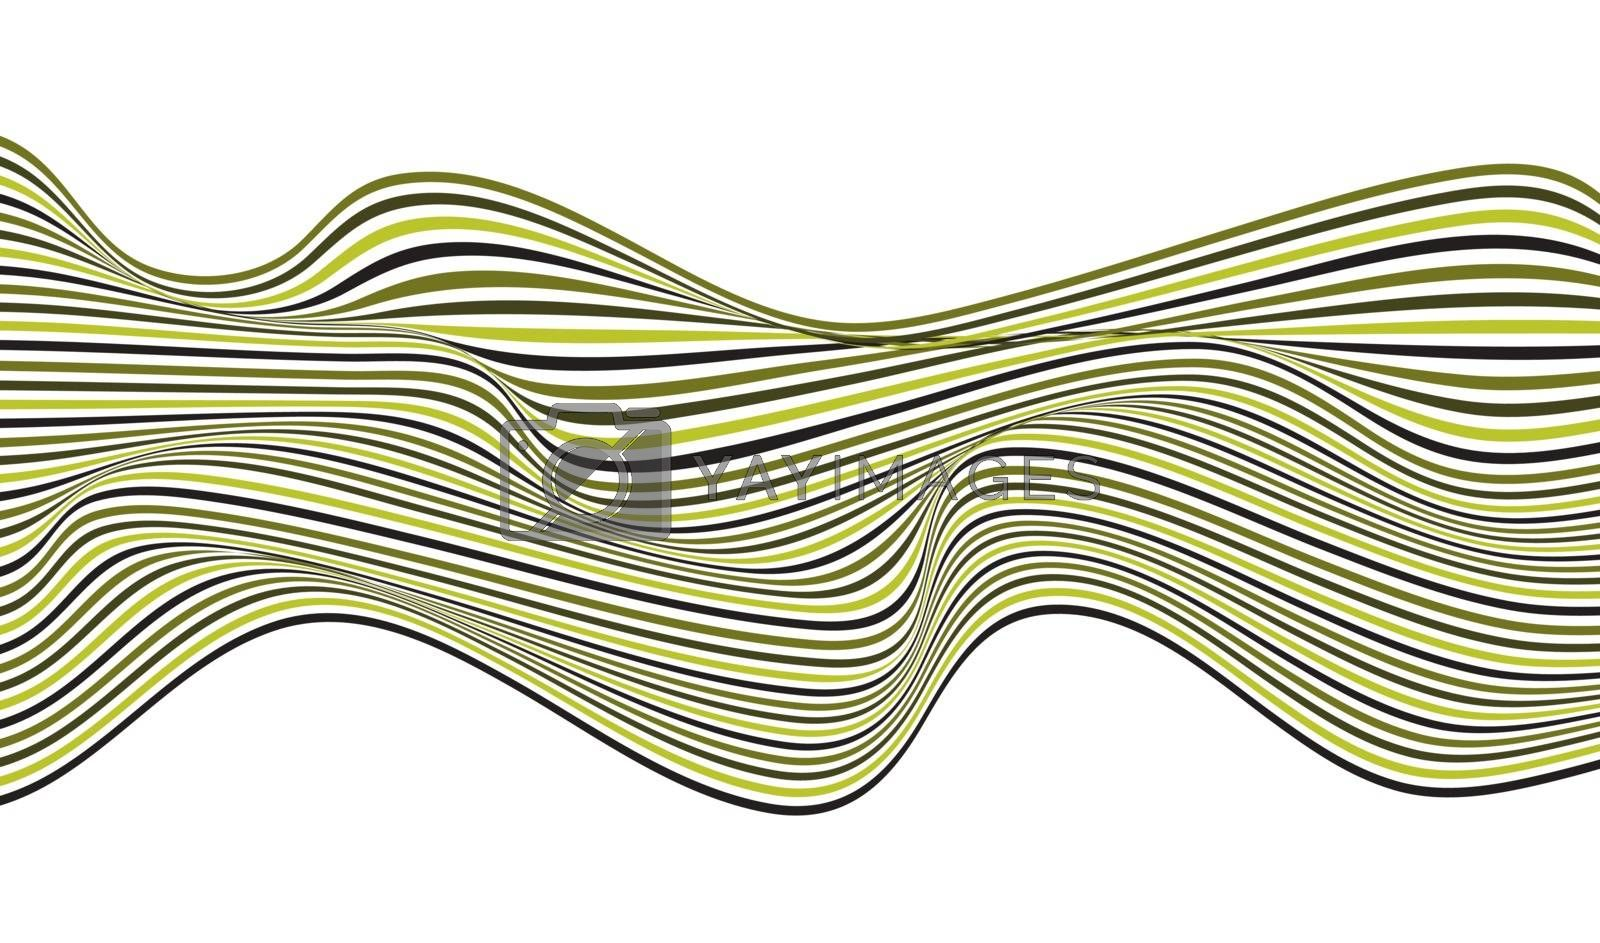 Abstract green wave lines pattern optical art design isolated on white background. Wavy line stripes texture. Vector illustration